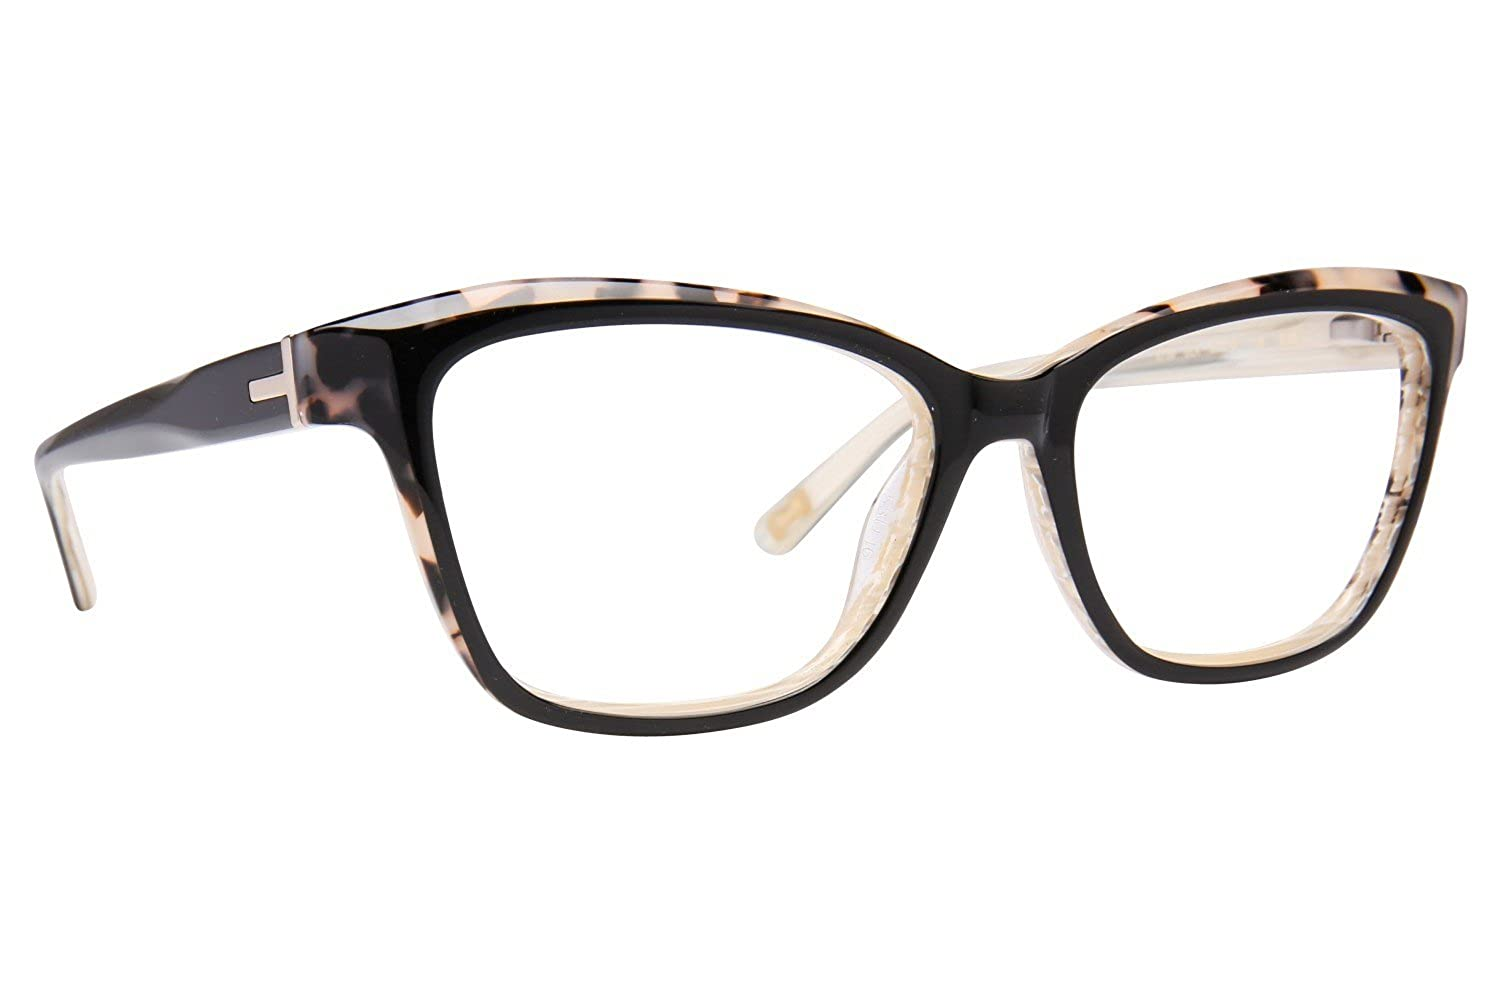 90a1806179 Amazon.com  Ted Baker B738 Womens Eyeglass Frames - Black  Clothing